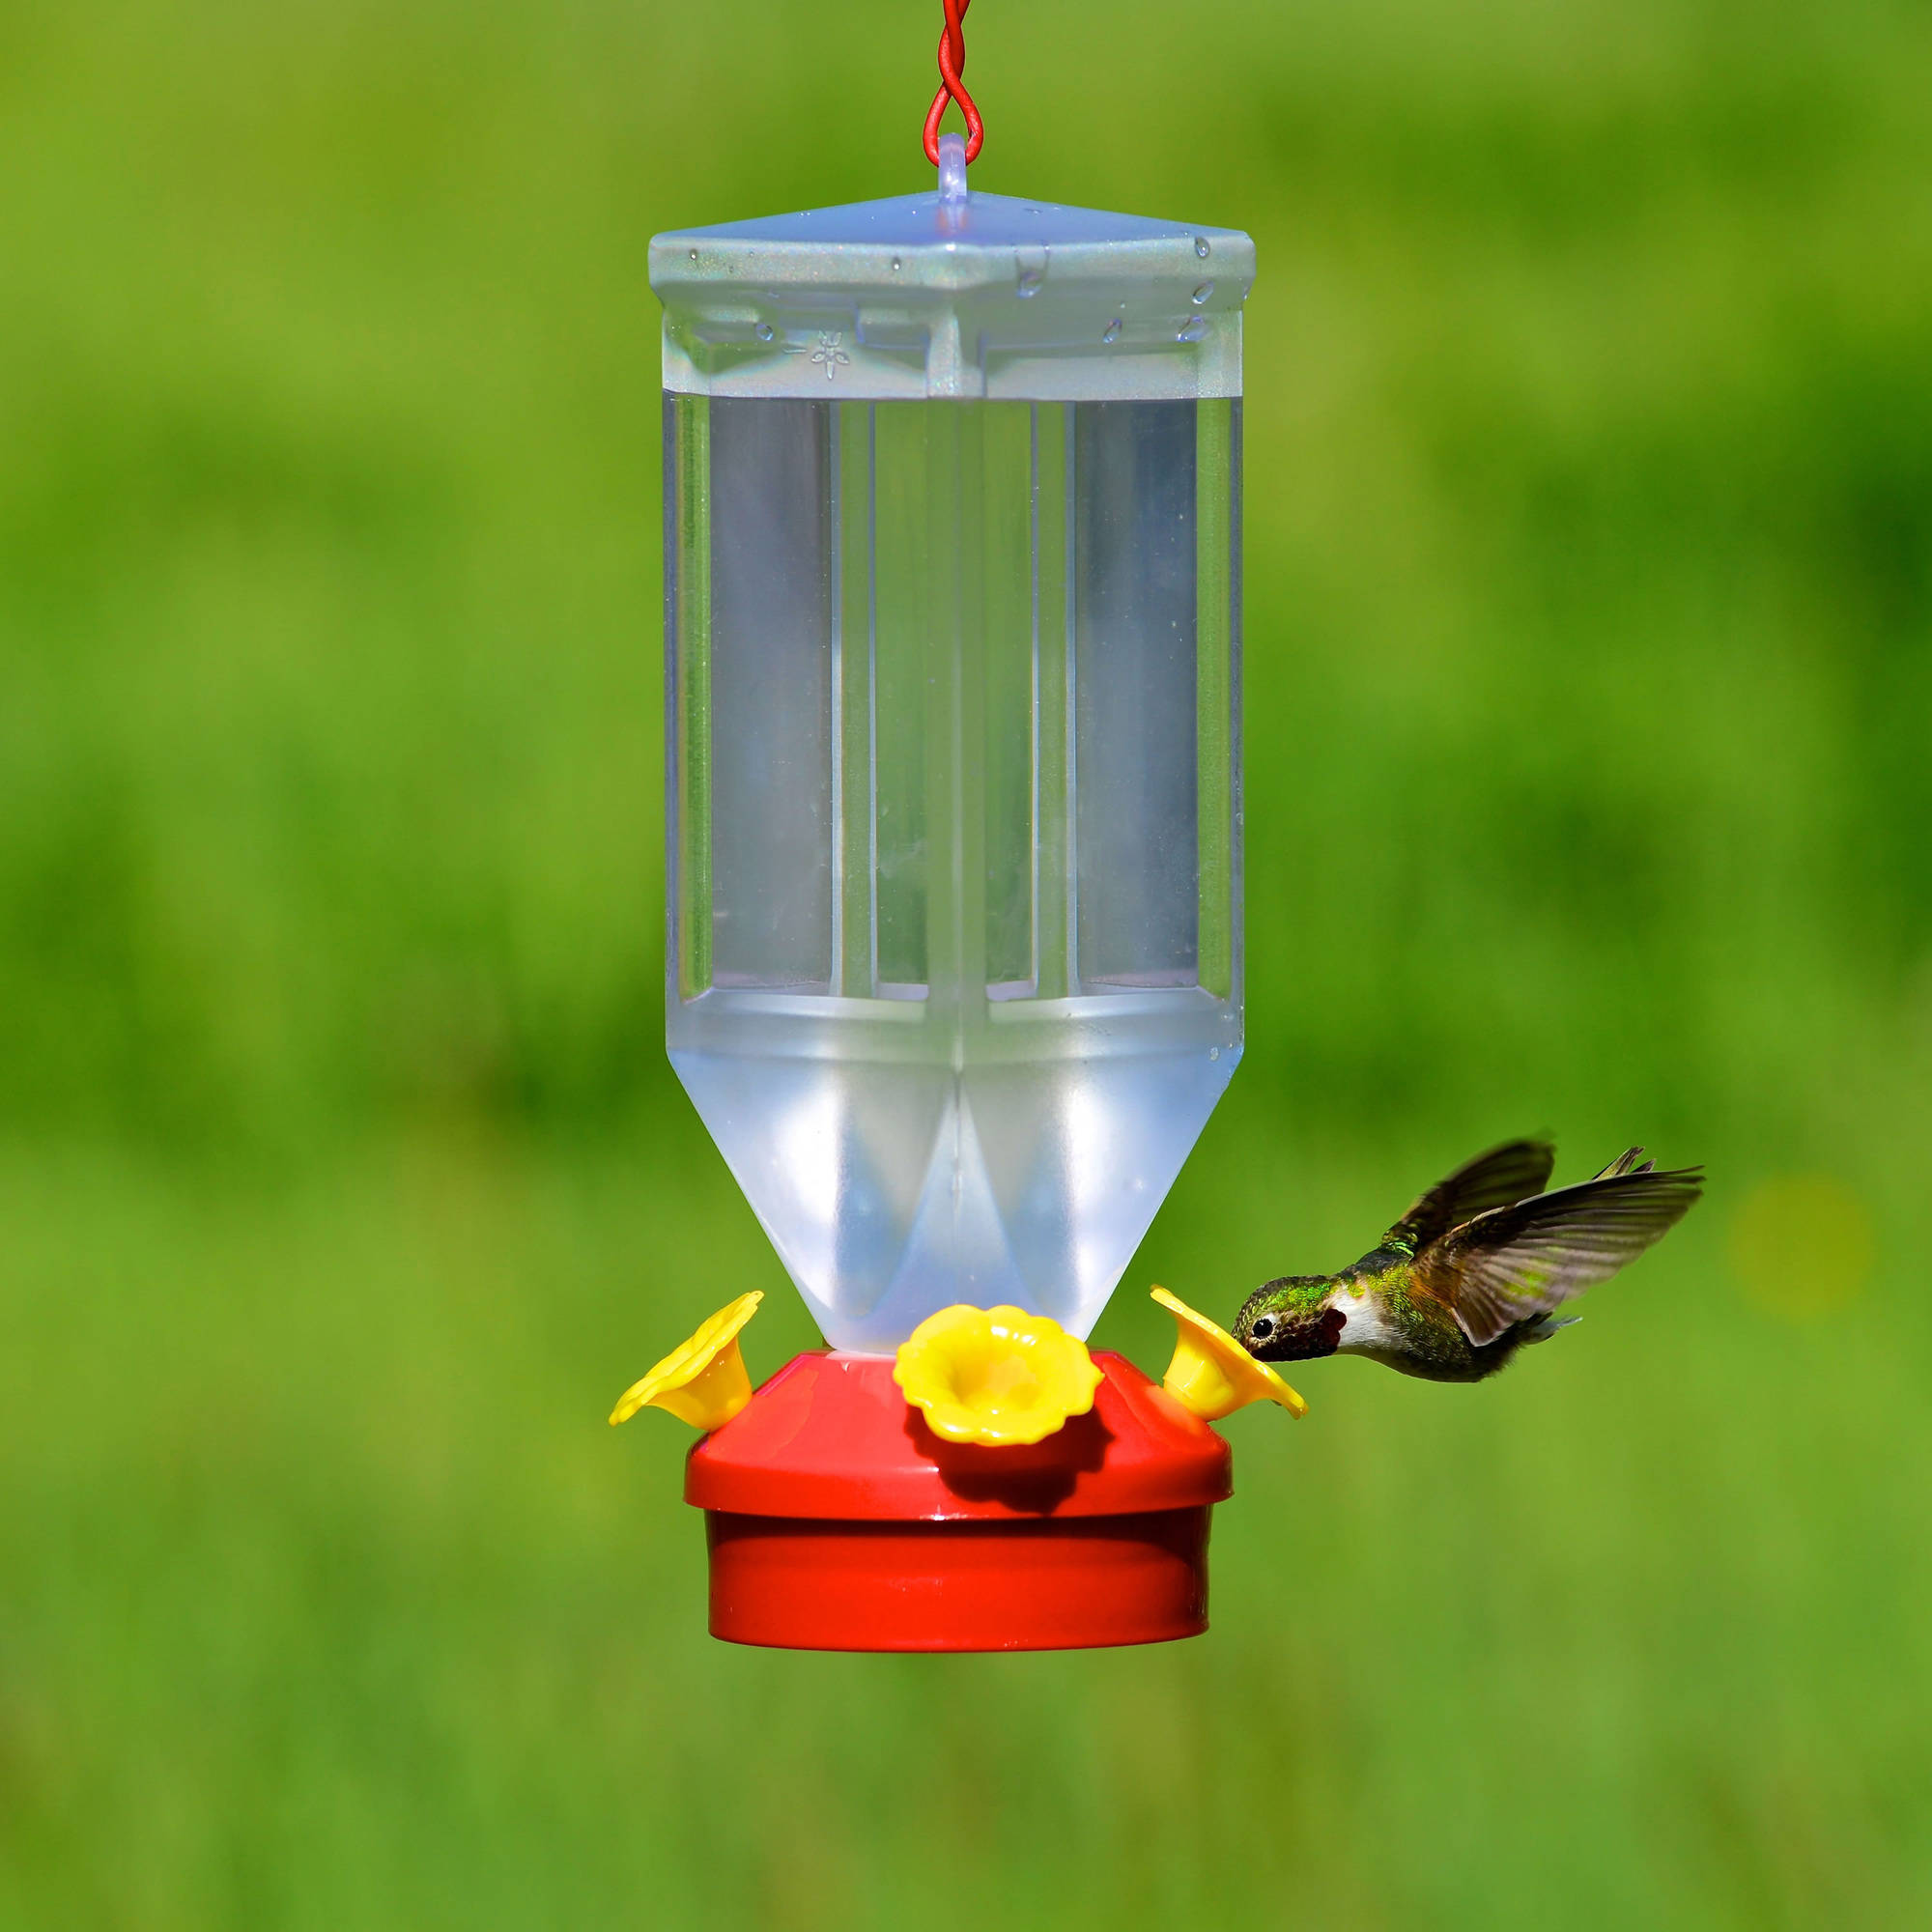 design flower feeder humingbird recycled uncommongoods hummingbird product